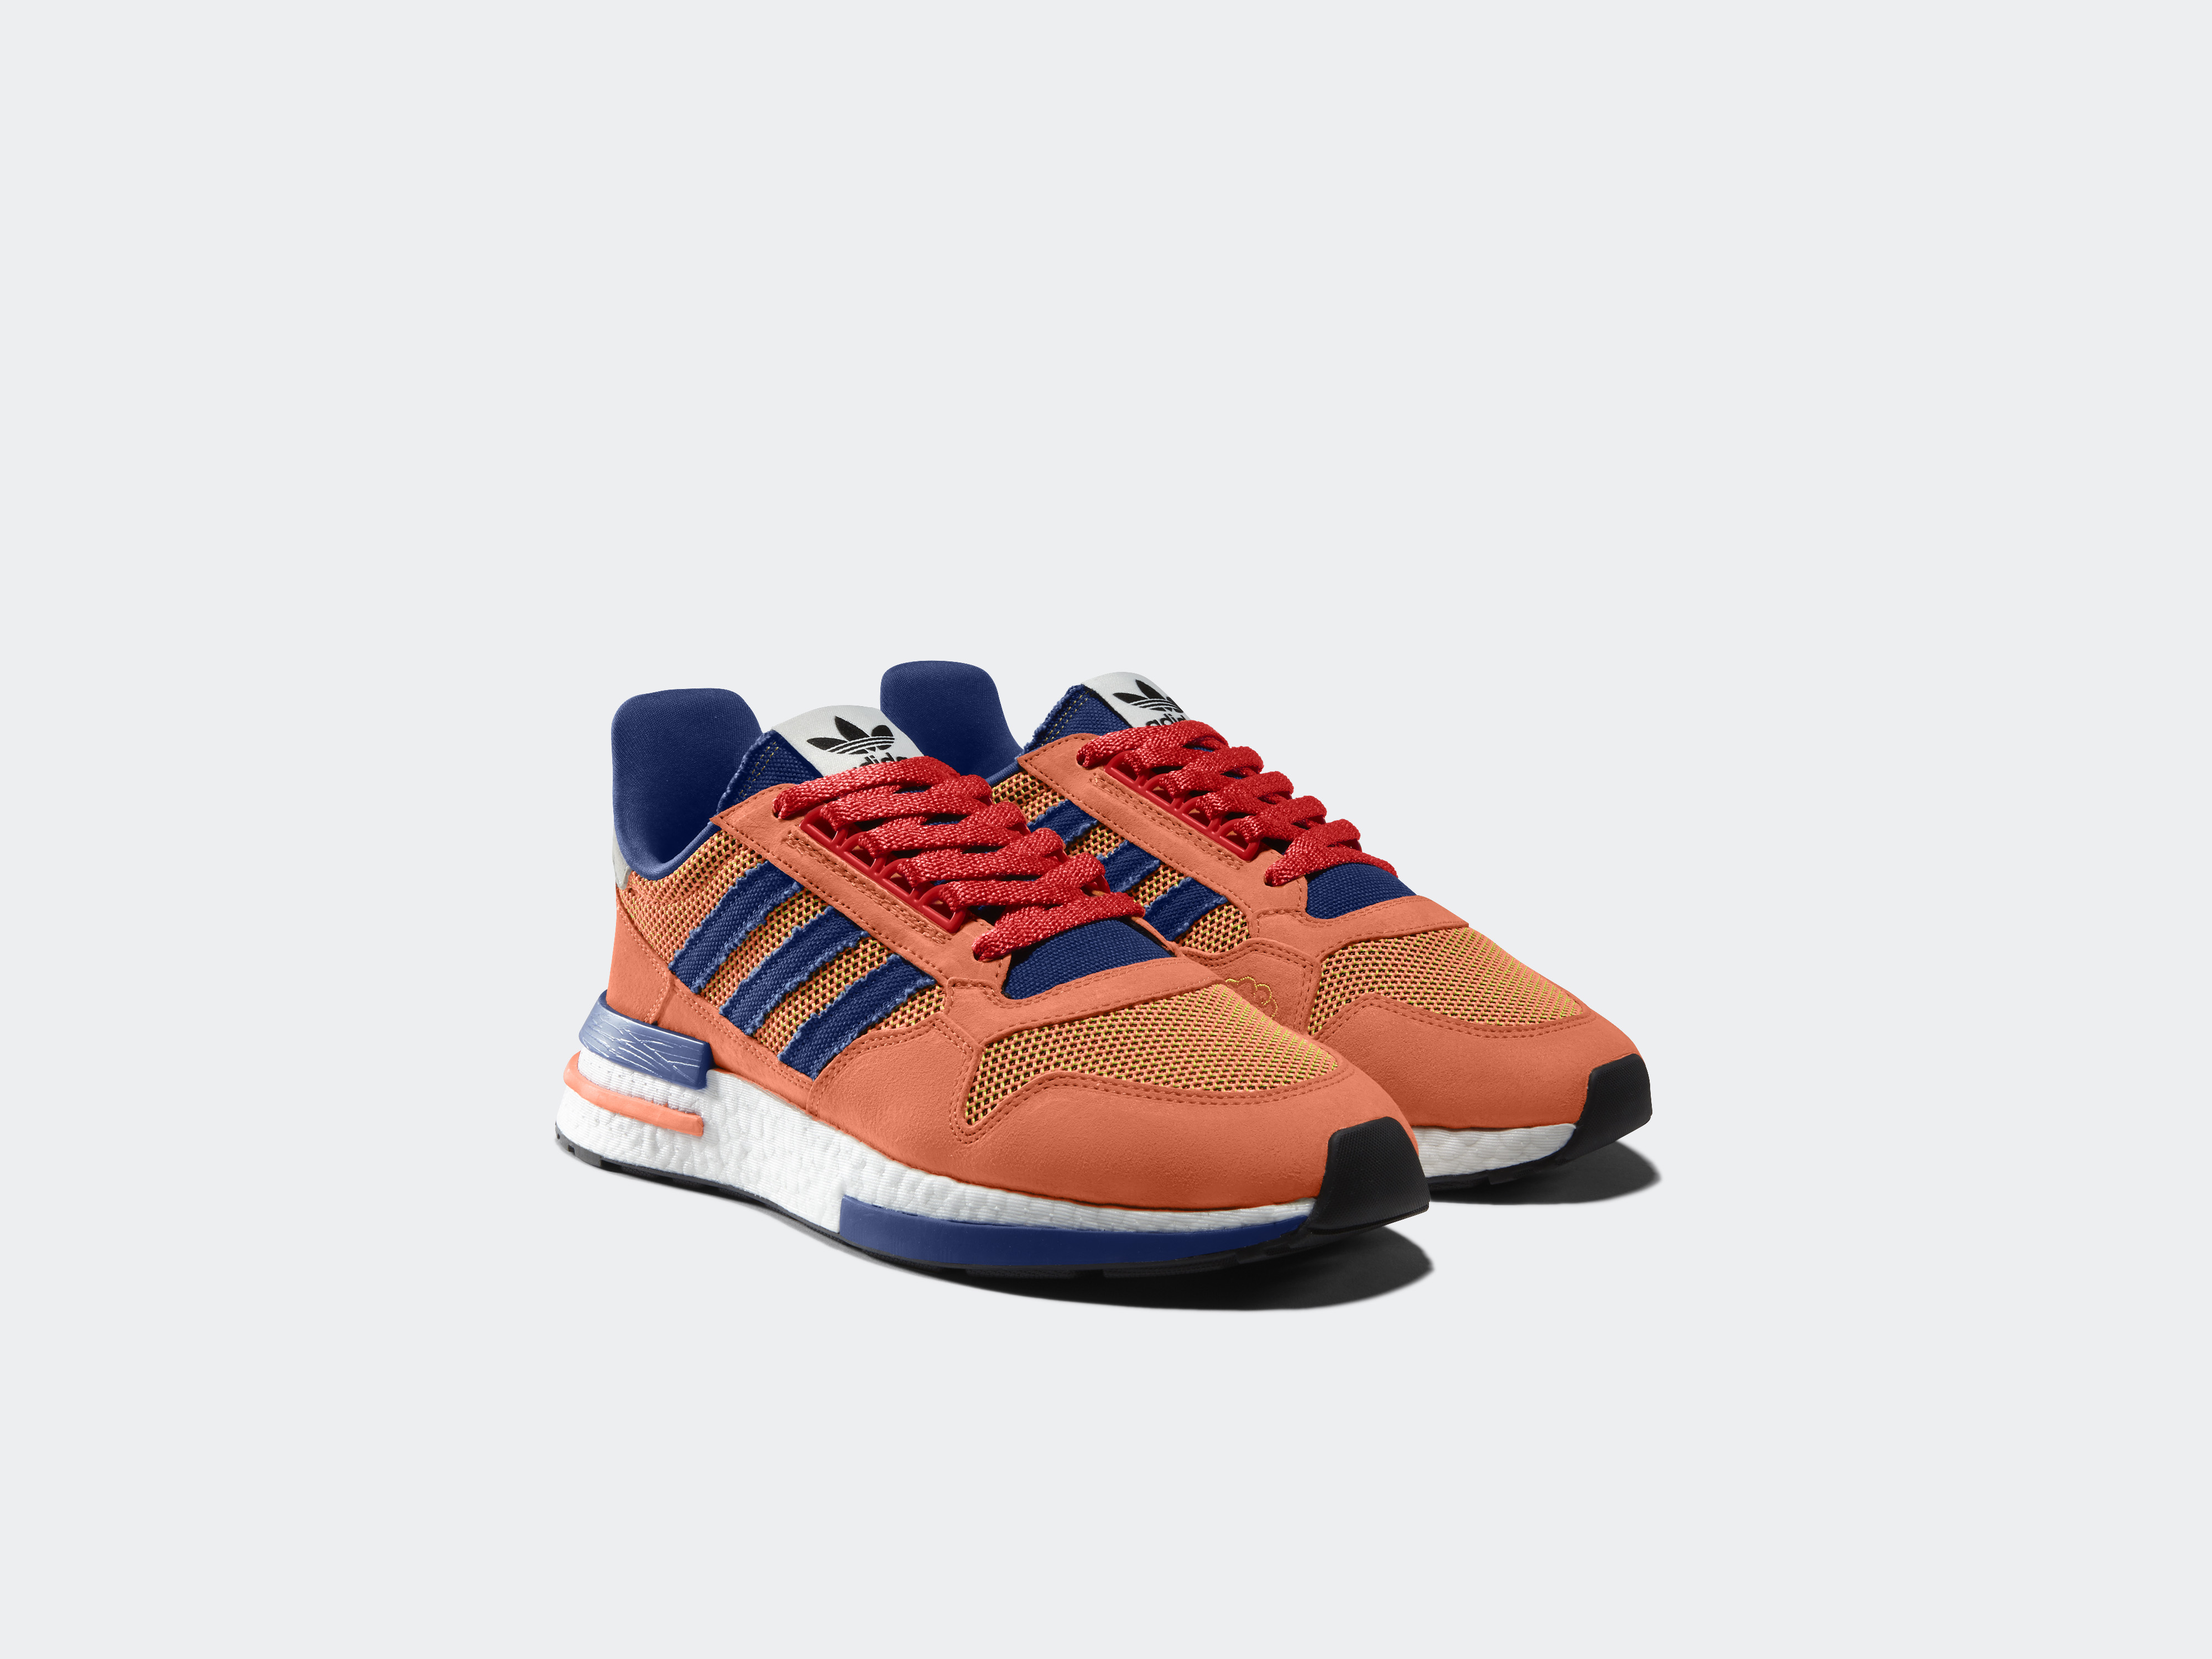 buy online 869f4 dc7a3 Adidas announces release of long-awaited Dragon Ball Z ...